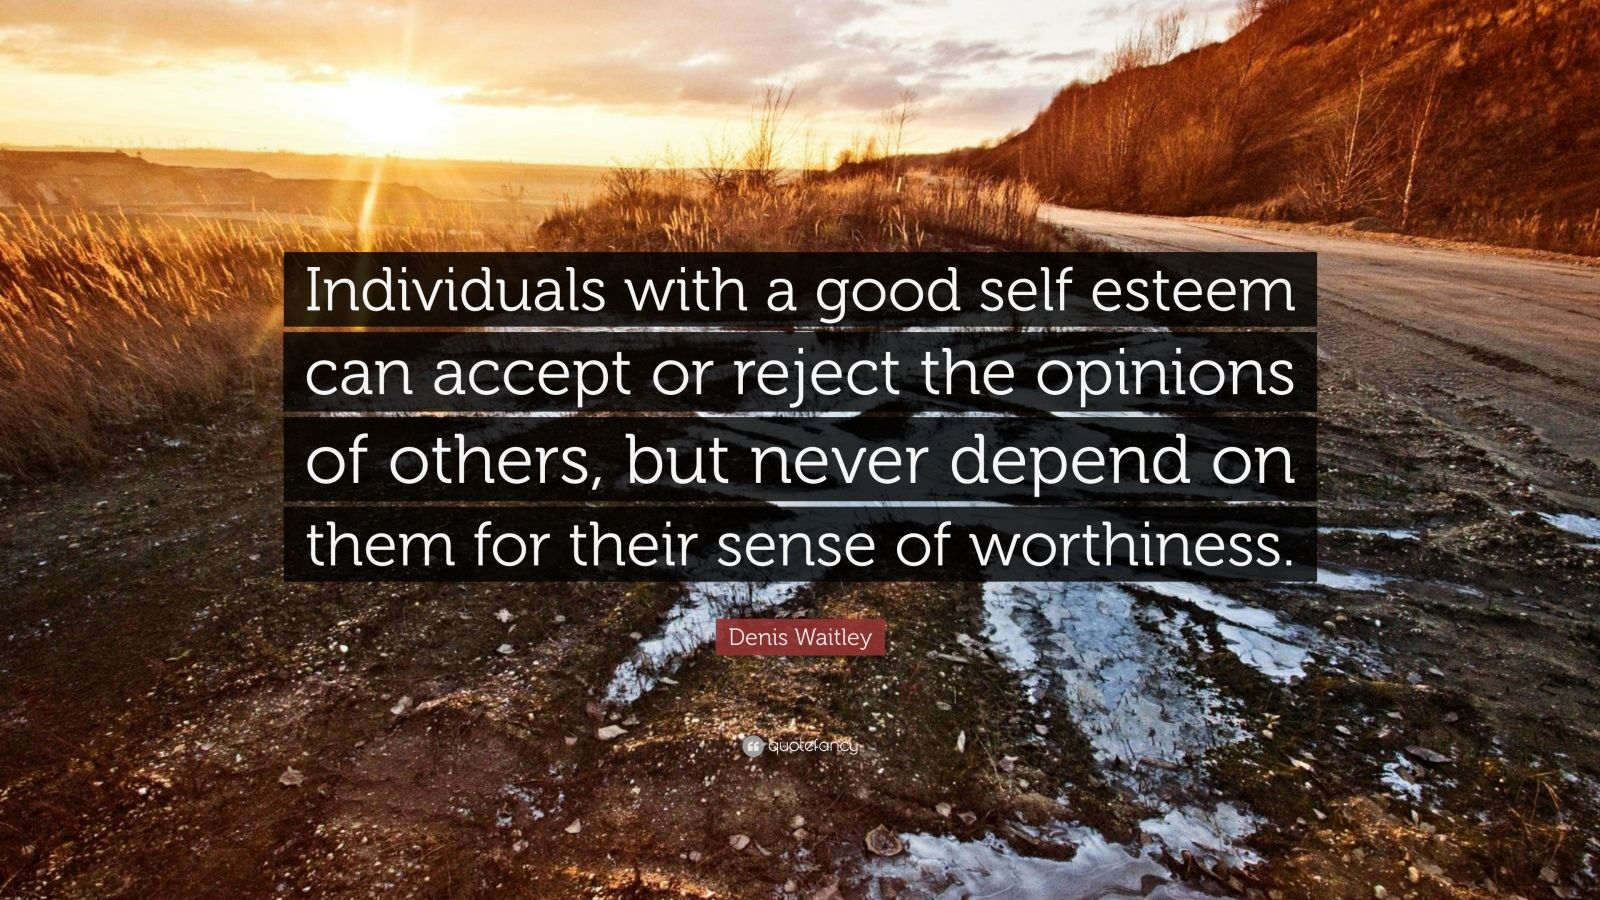 """Denis Waitley Quote: """"Individuals with a good self esteem can accept or reject the opinions of others, but never depend on them for their sense of worthiness."""""""